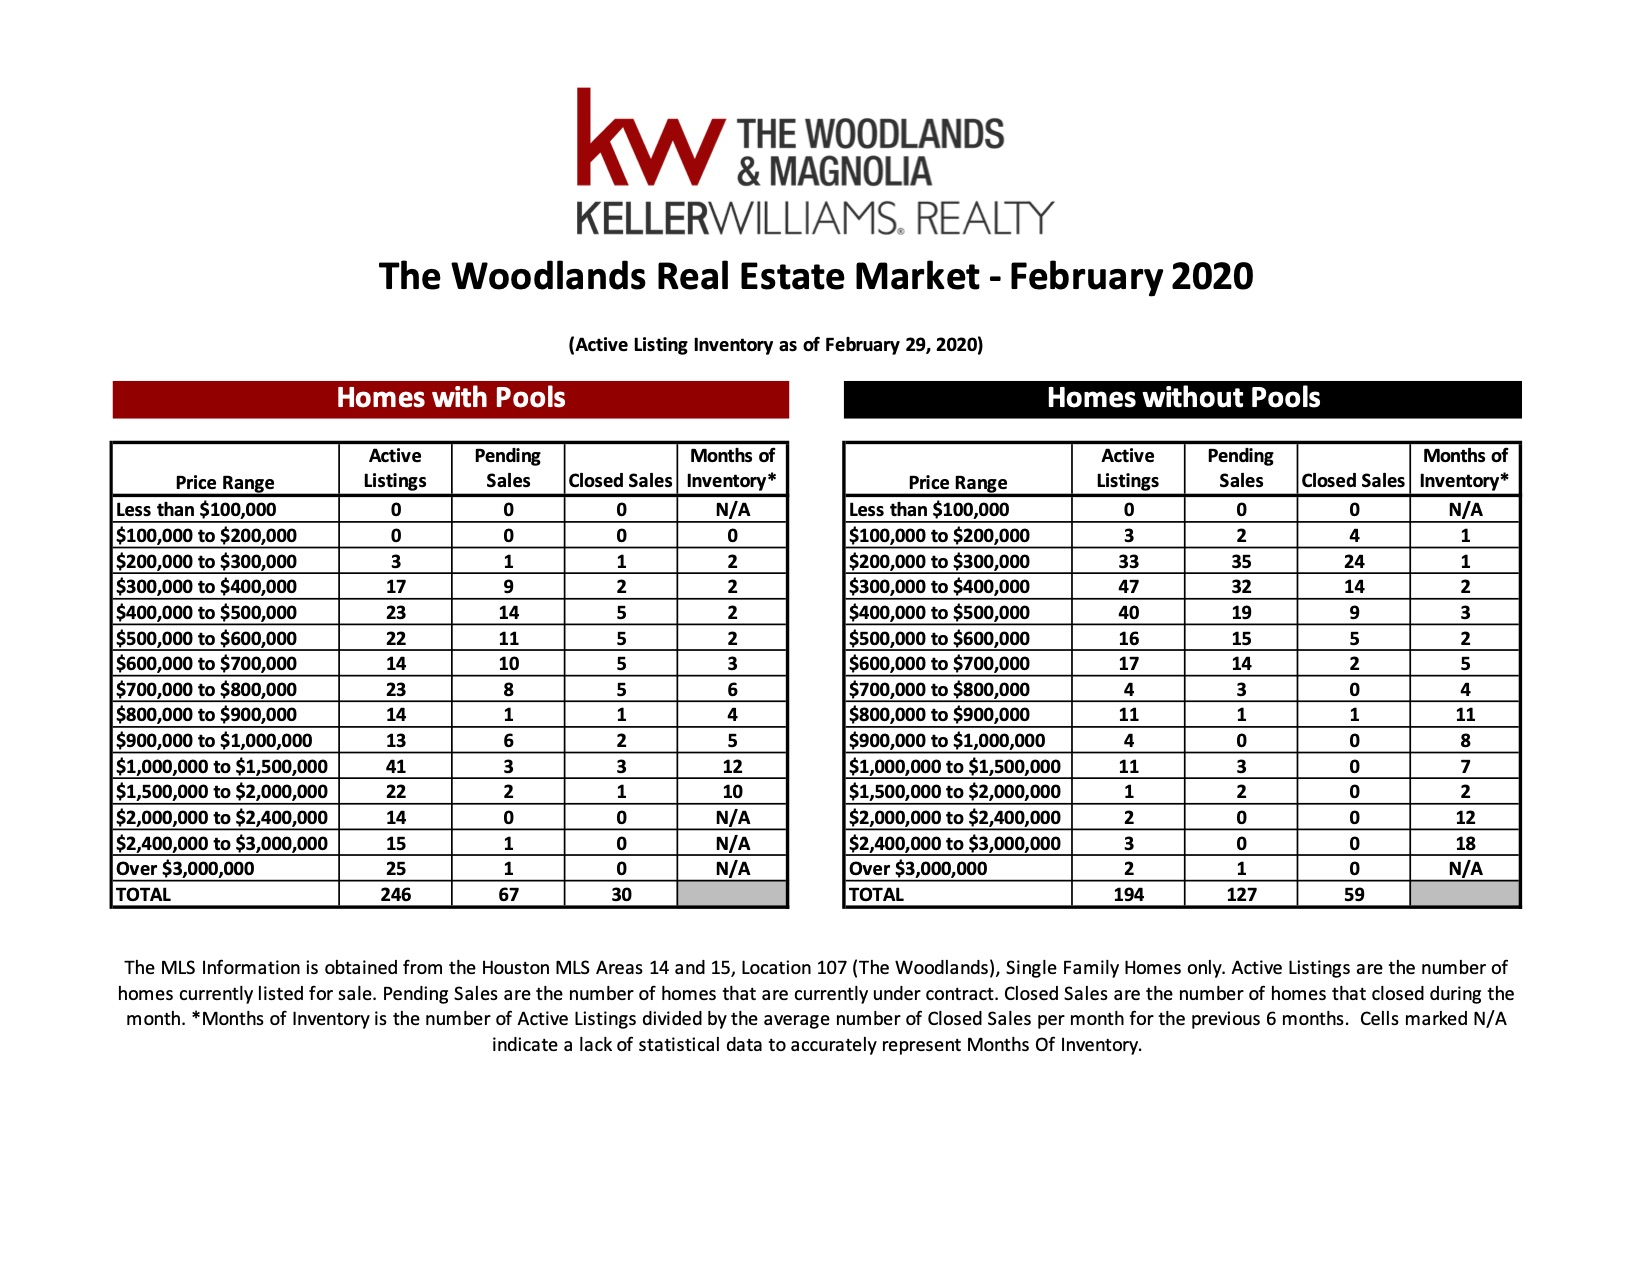 , February 2020 MarketWatch Report – The Woodlands, KW Woodlands